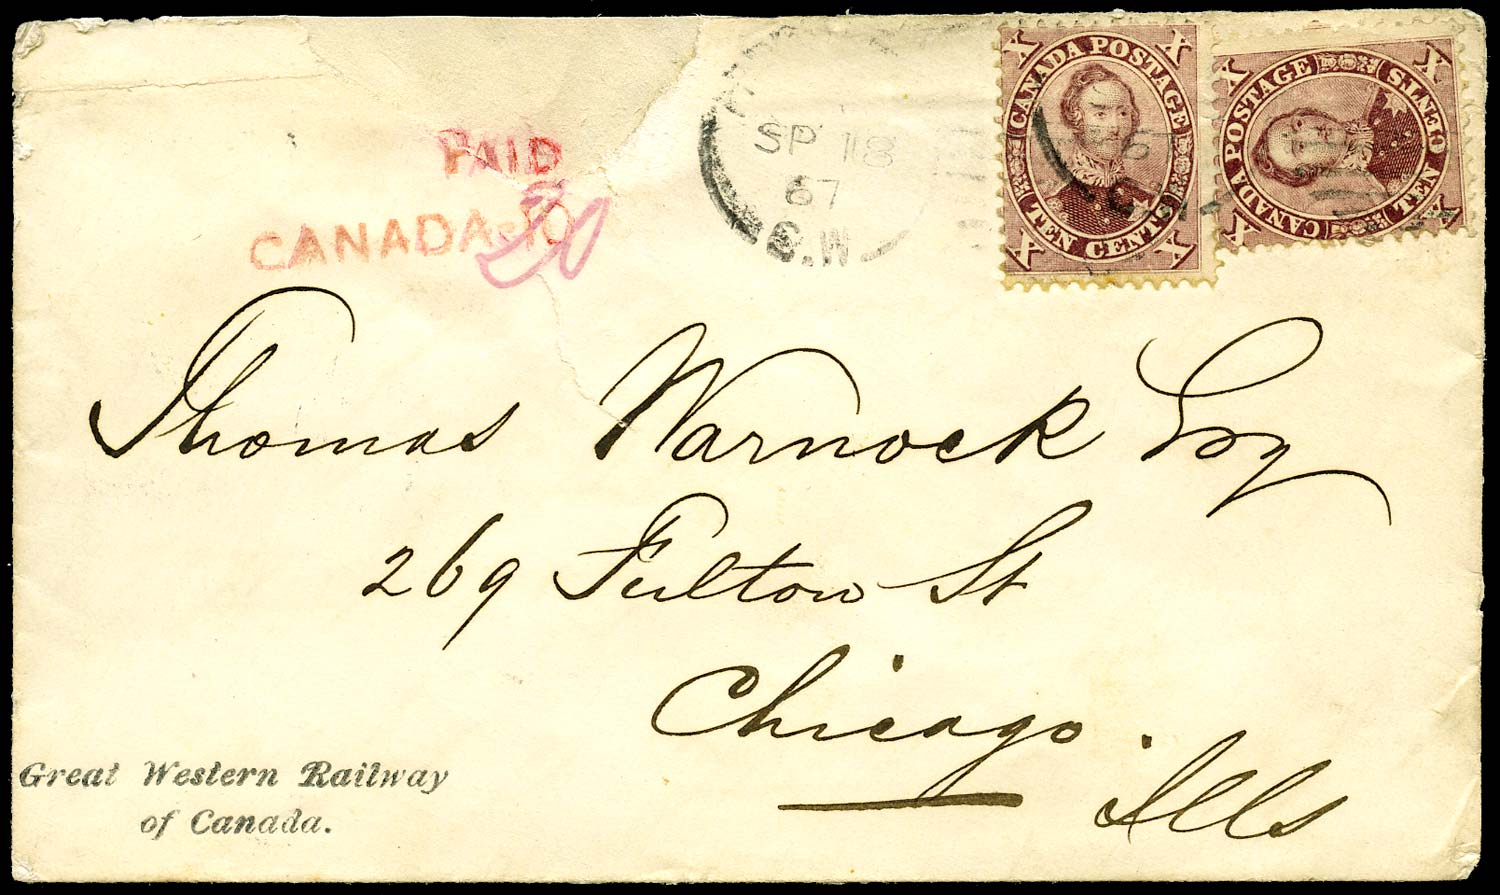 CANADA 1866  SG38 Cover with Great Western Railway of Canada imprint